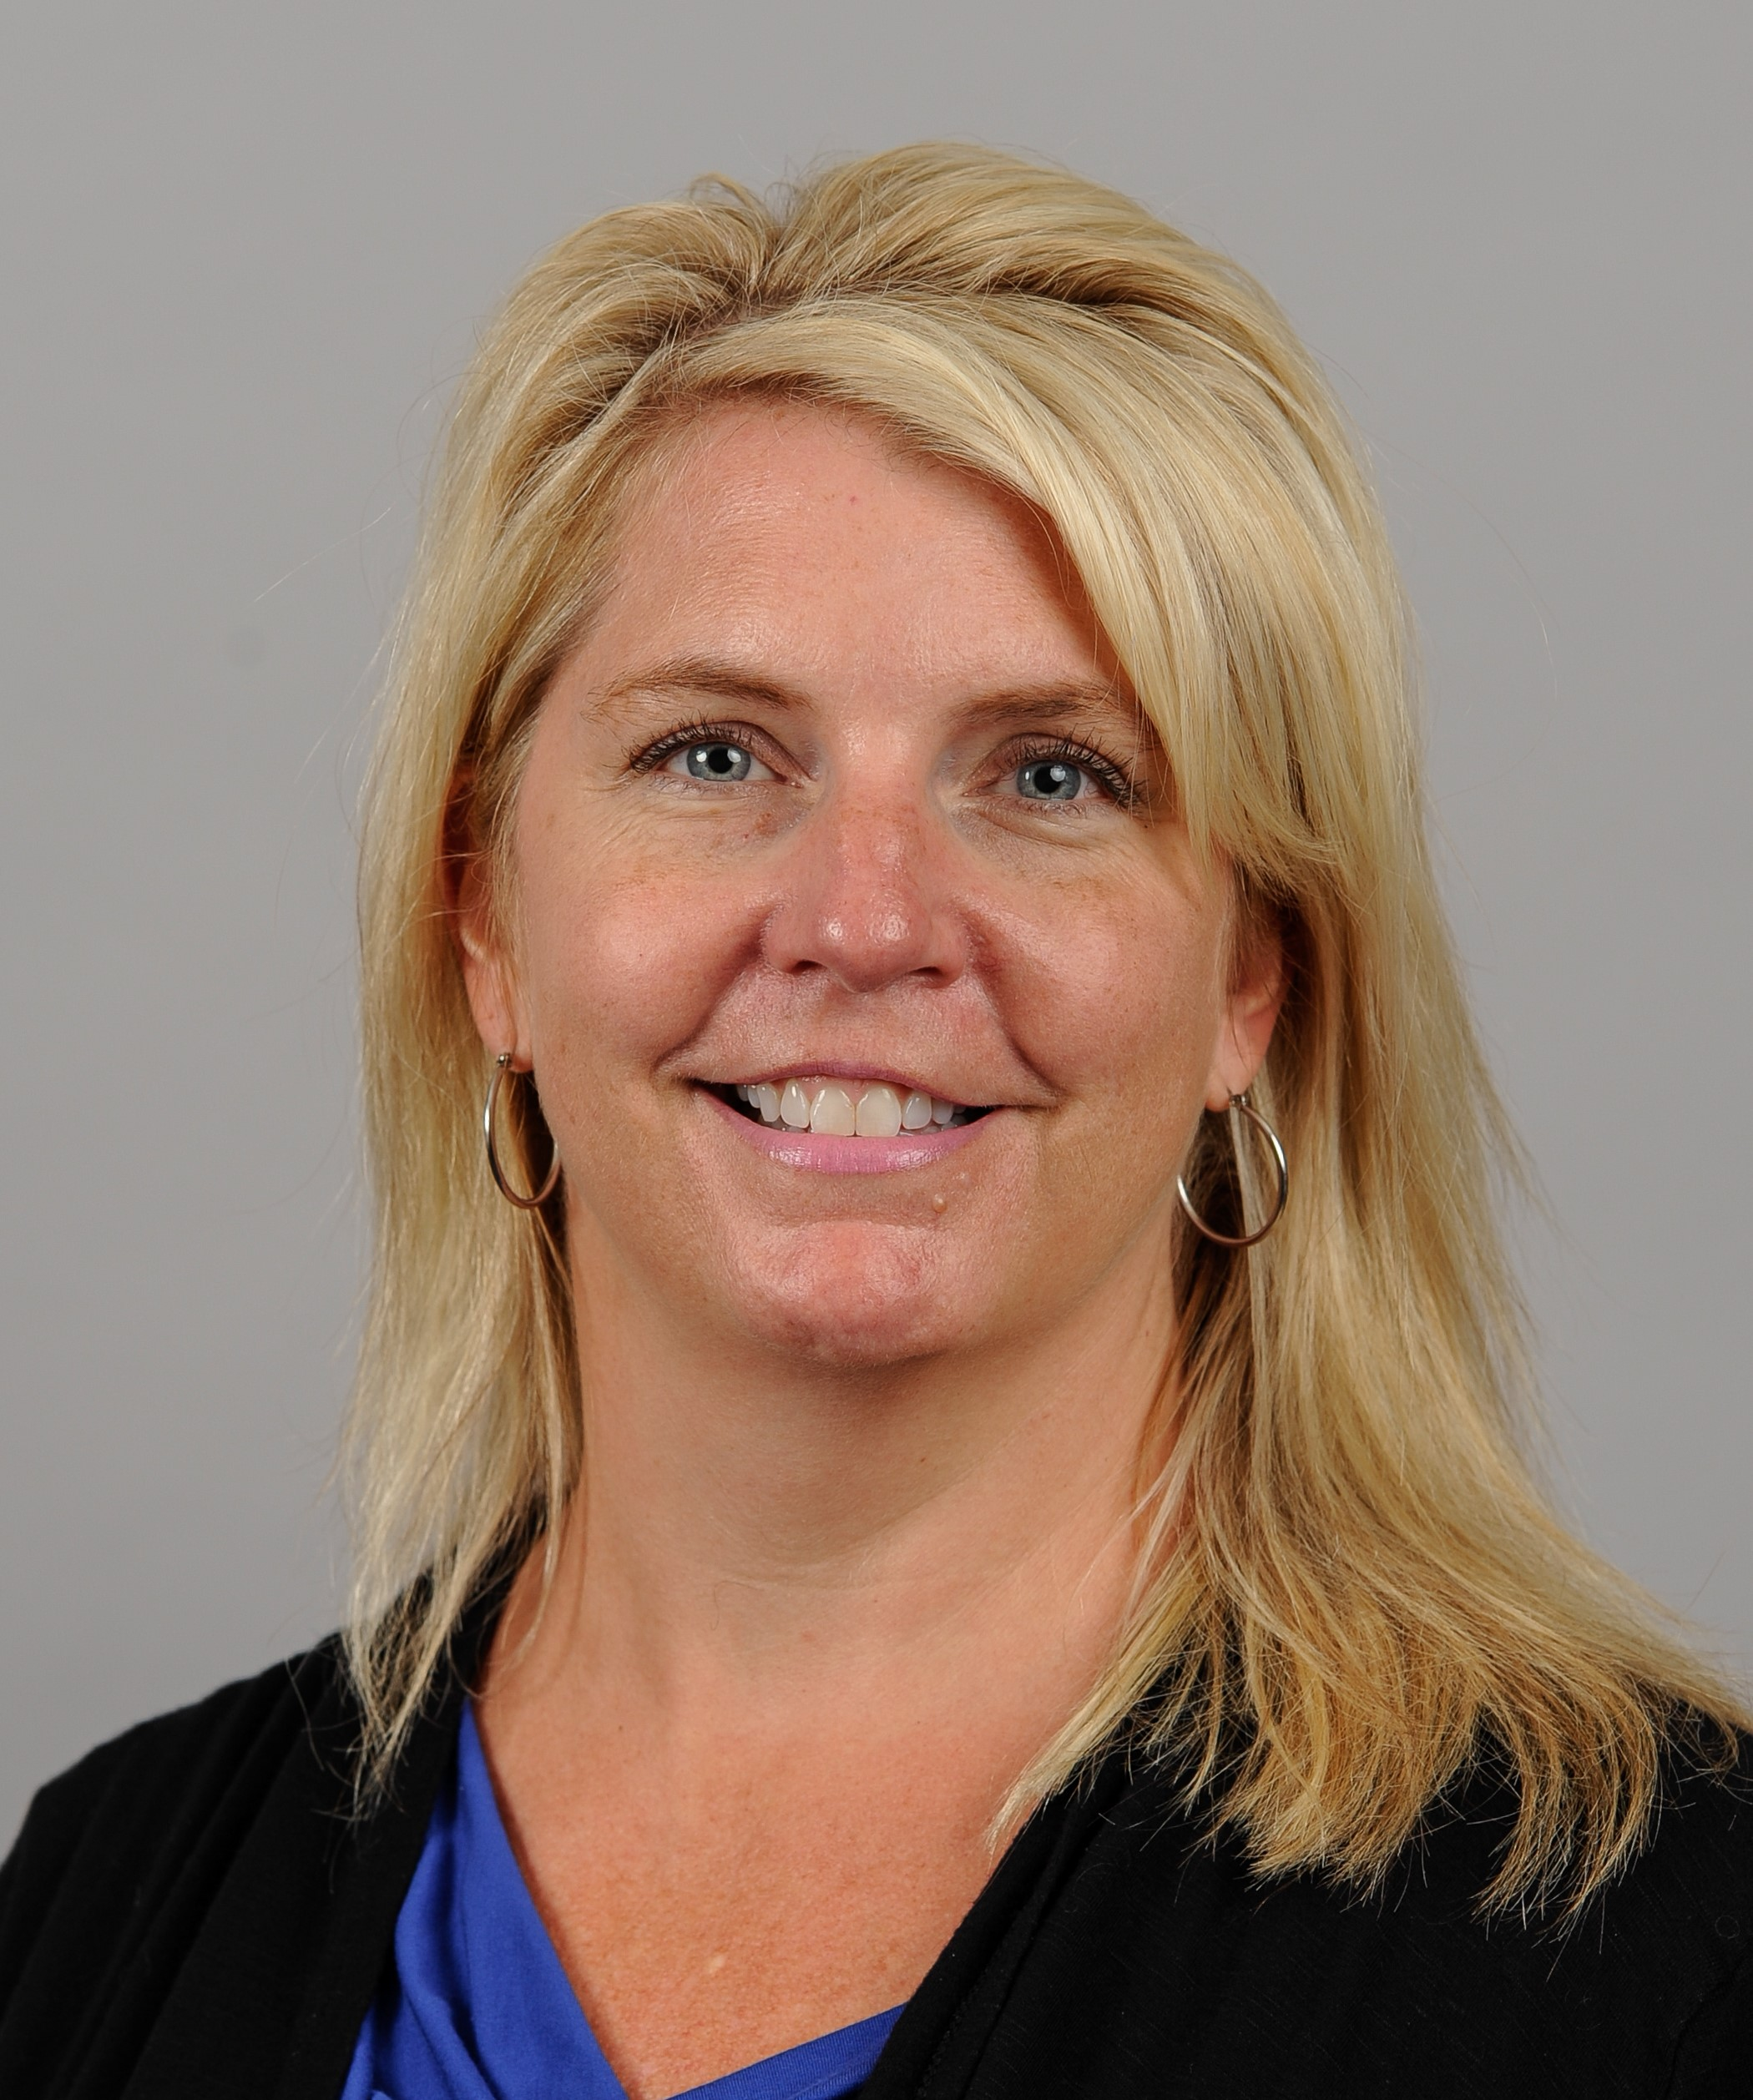 A picture of Tanya Boone has been named the new dean of USC Upstate's College of Arts, Humanities, and Social Sciences